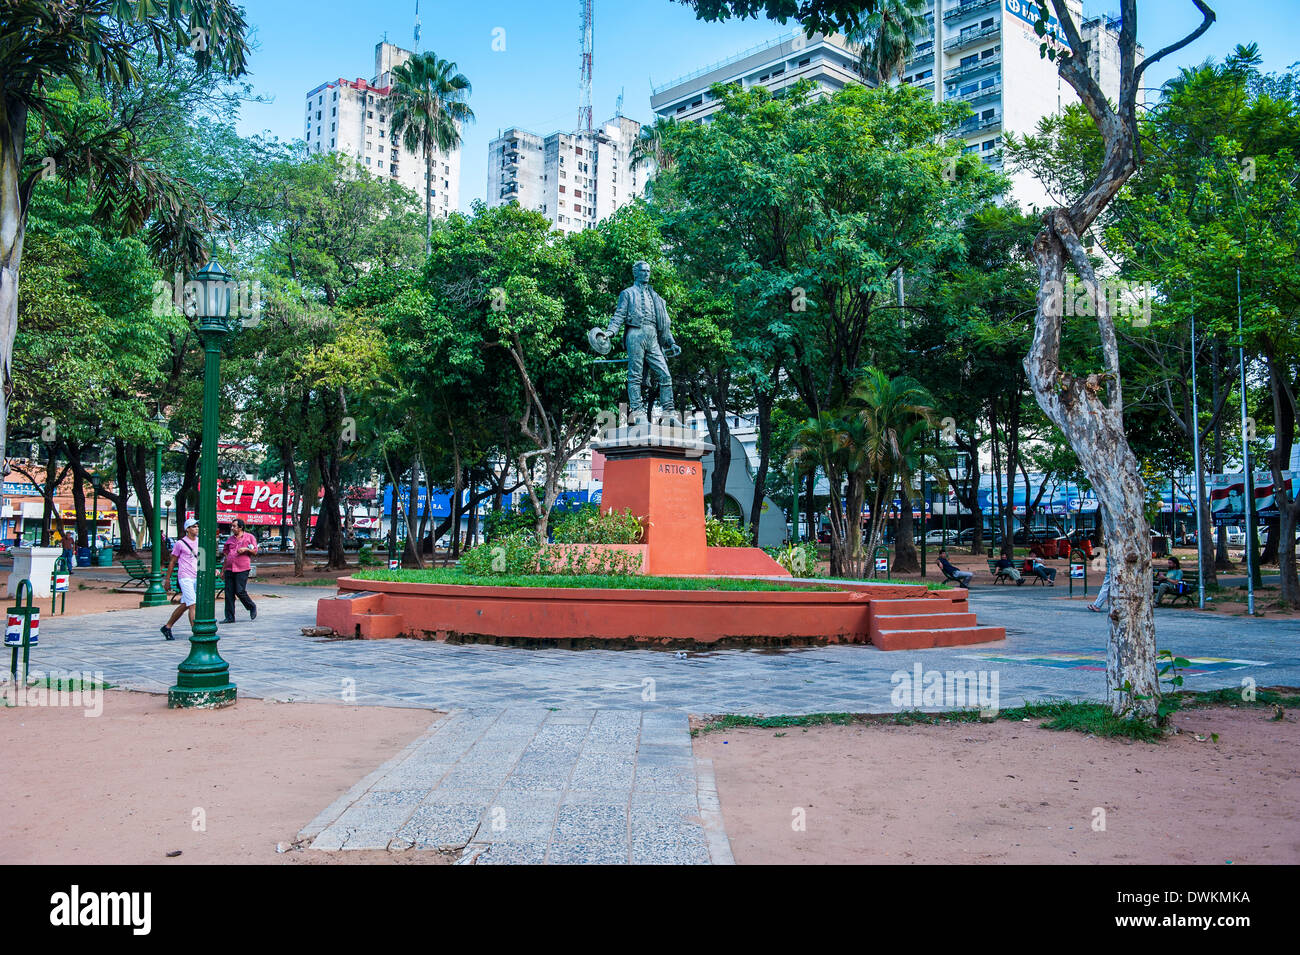 Uruguay Square in Asuncion, Paraguay, South America - Stock Image